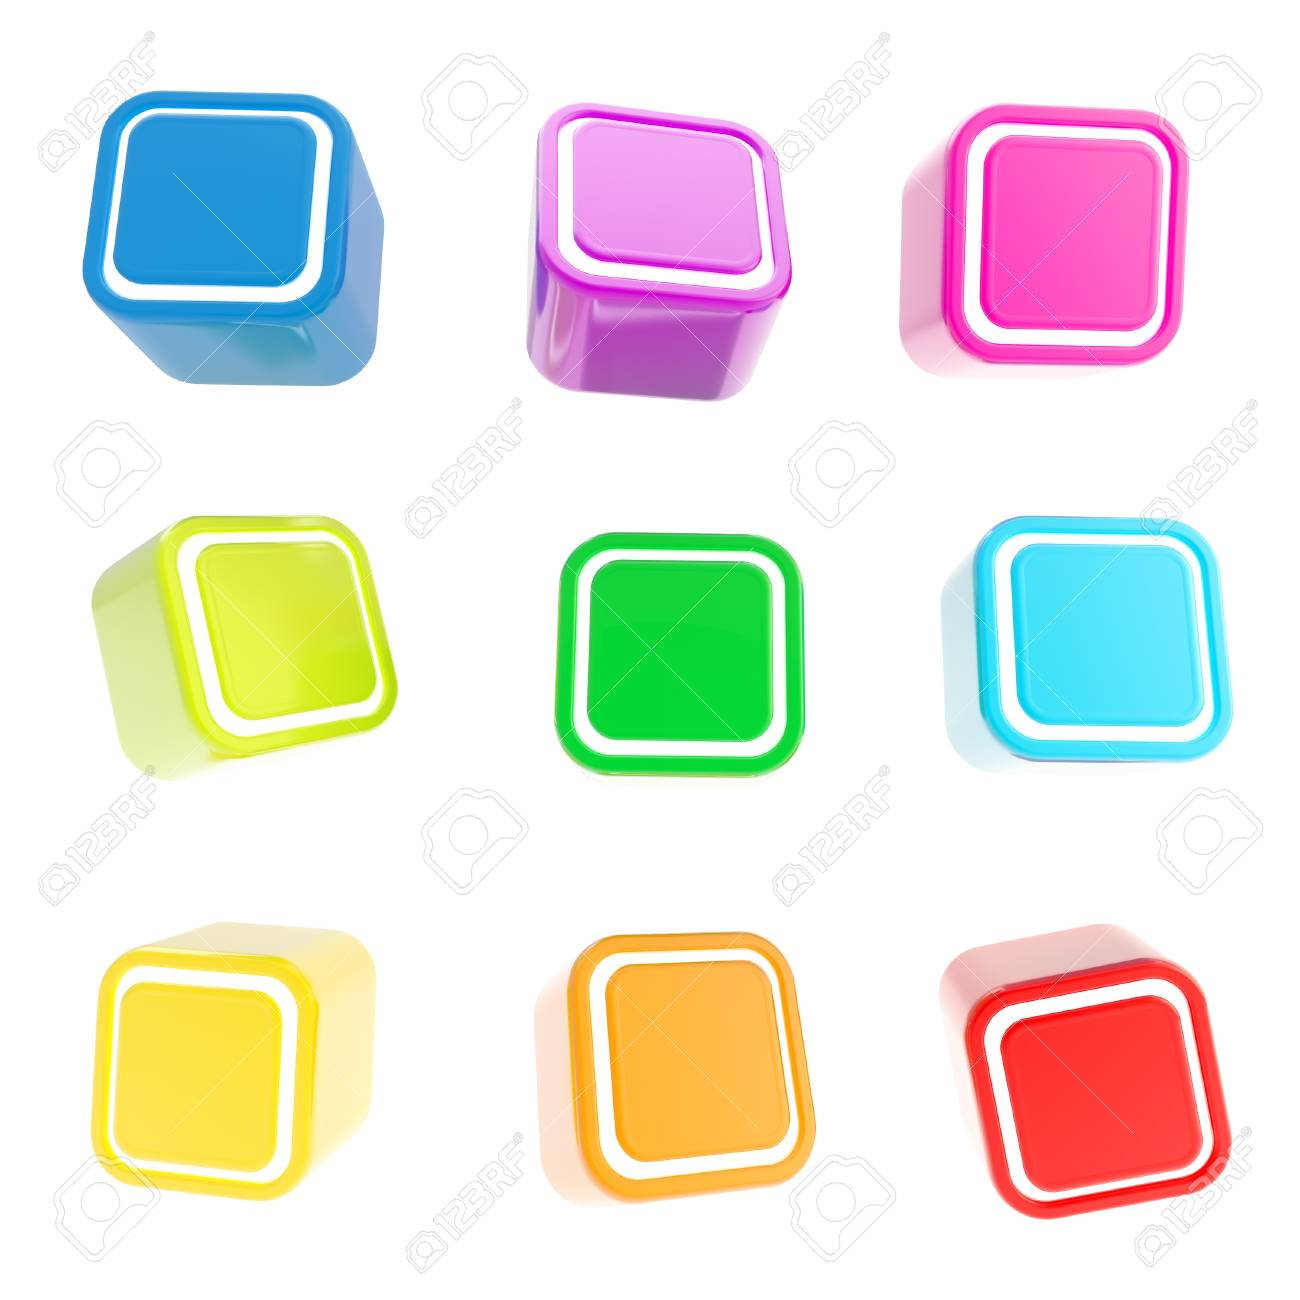 Cubic colorful glossy square buttons, set of nine isolated on white Stock Photo - 15100587